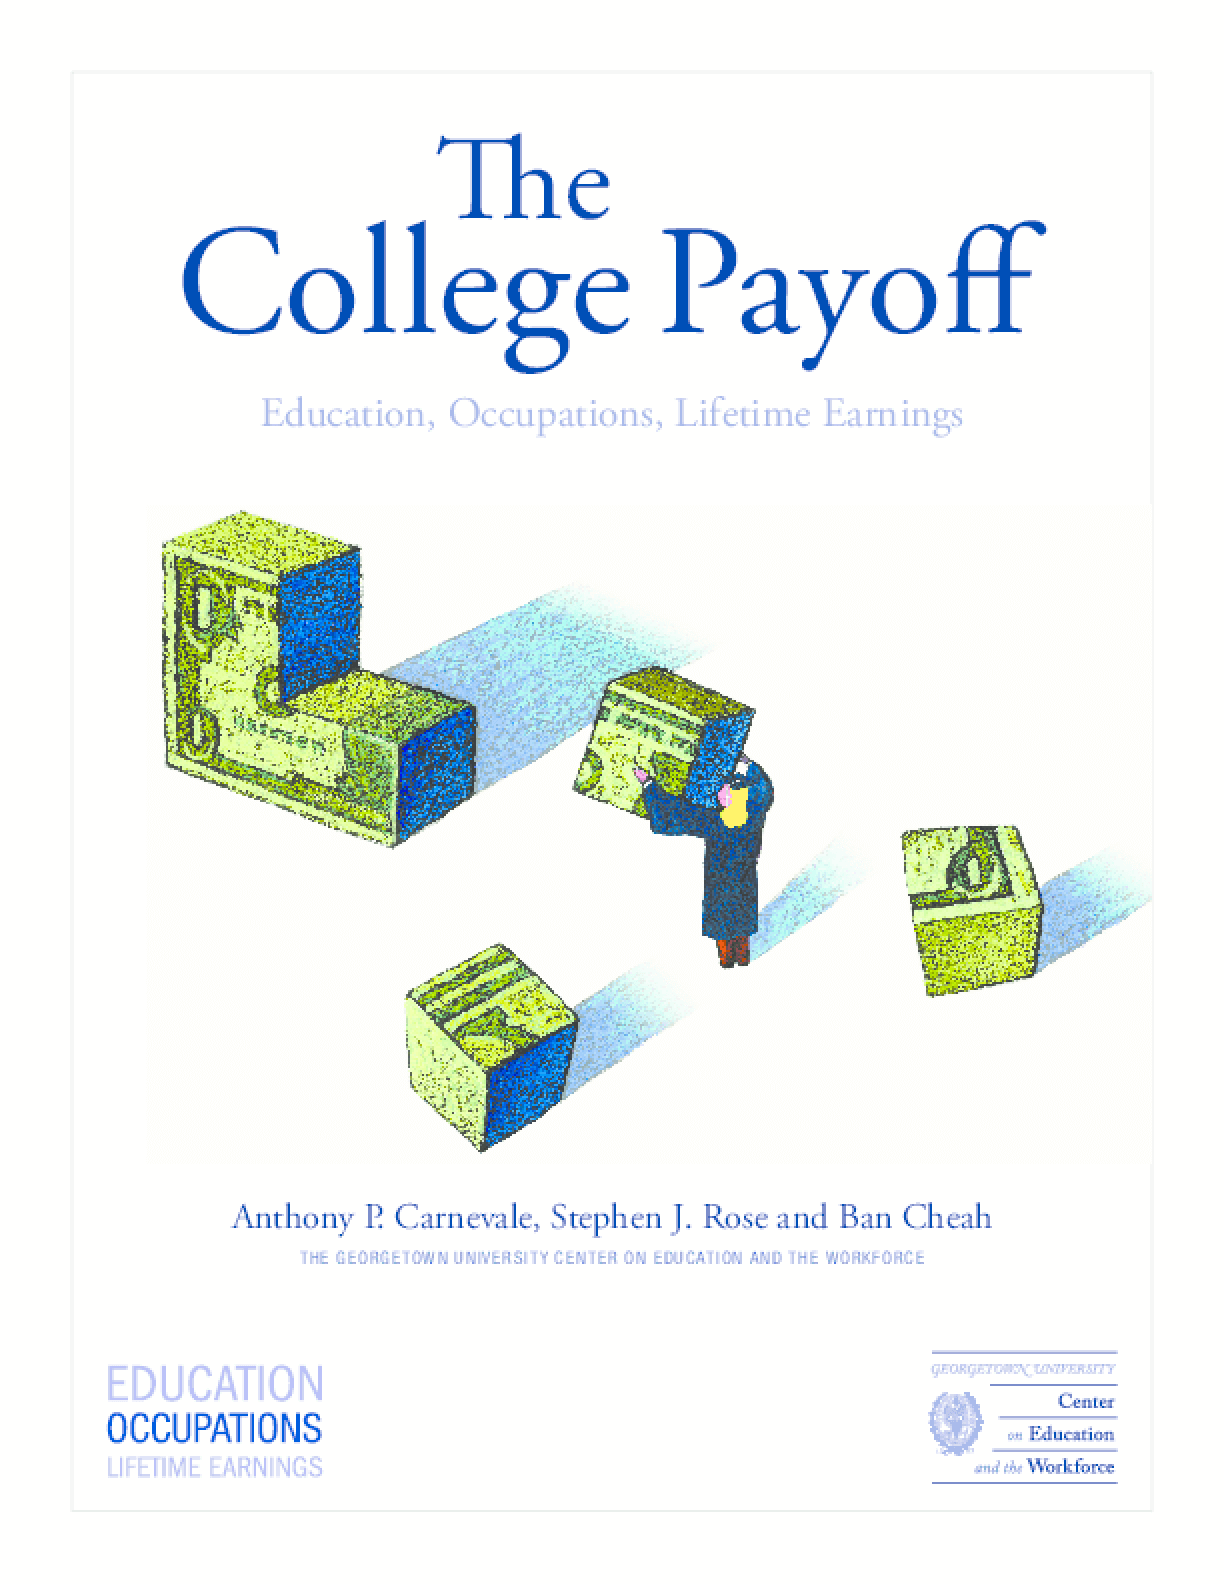 The College Payoff: Education, Occupations, Lifetime Earnings